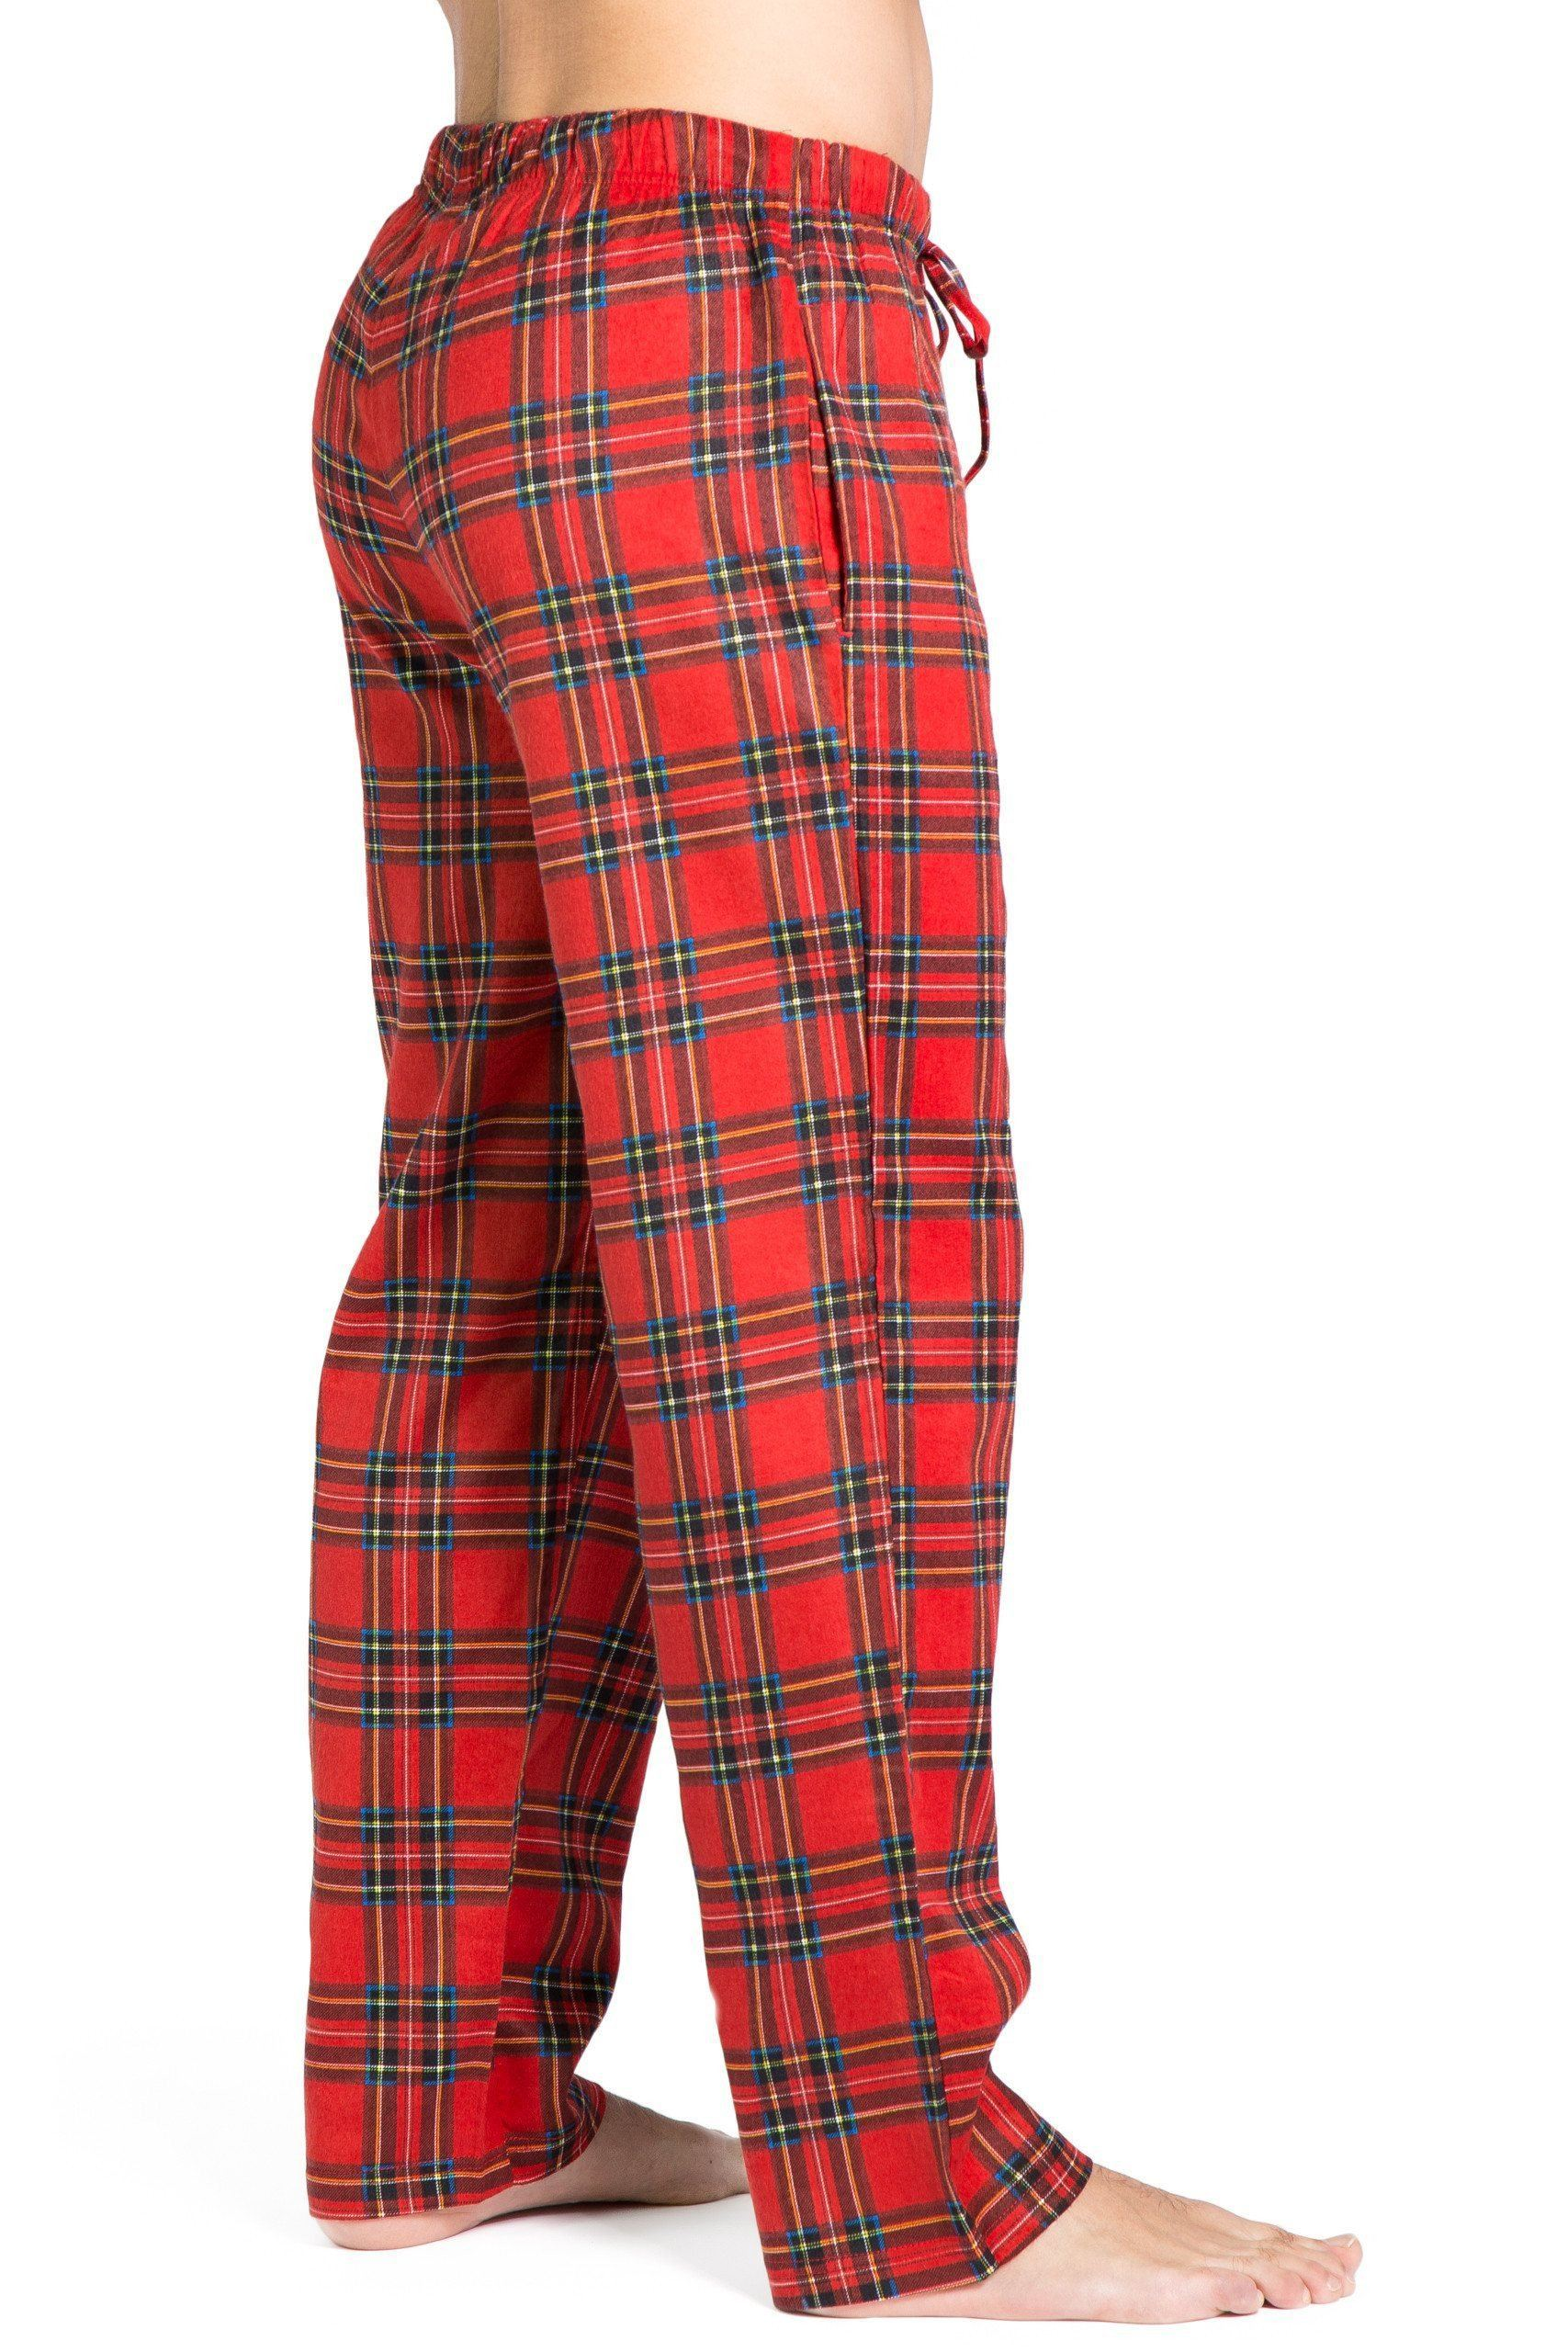 dae48aa0f0 Men s EcoFlannel™ Plaid Pajama Pants - Fishers Finery